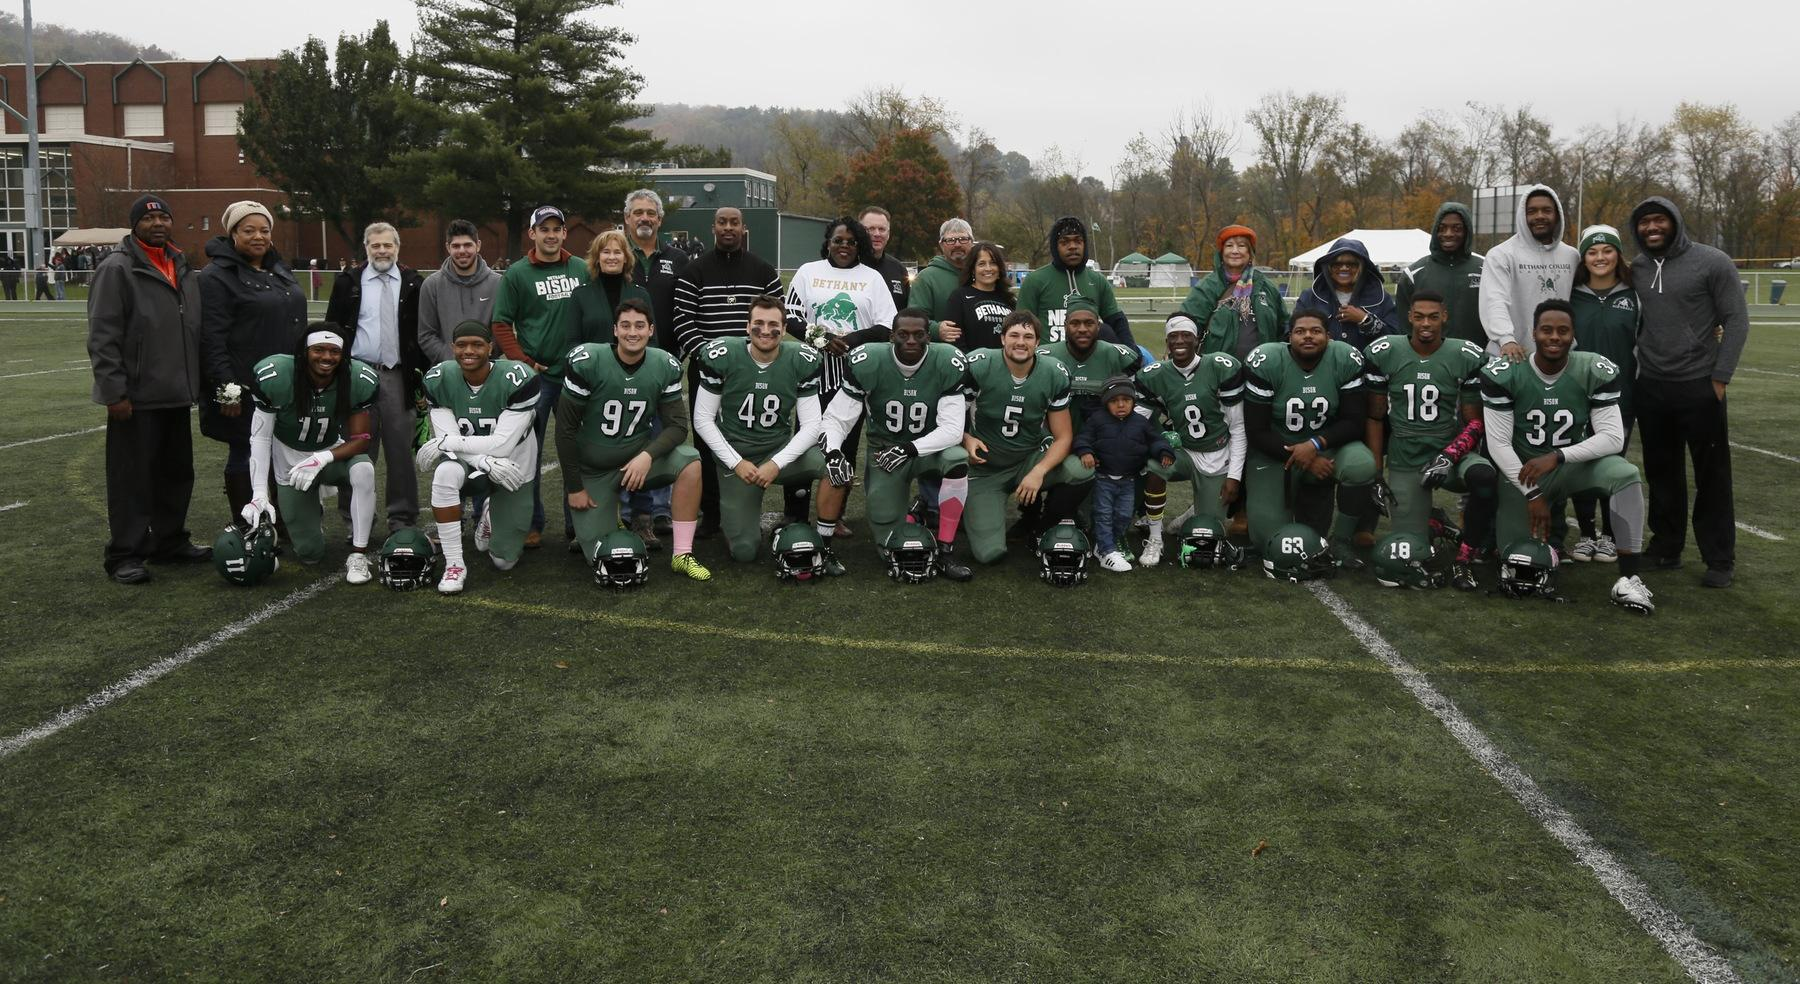 Bison defeated by Thomas More on Senior Day, 21-0